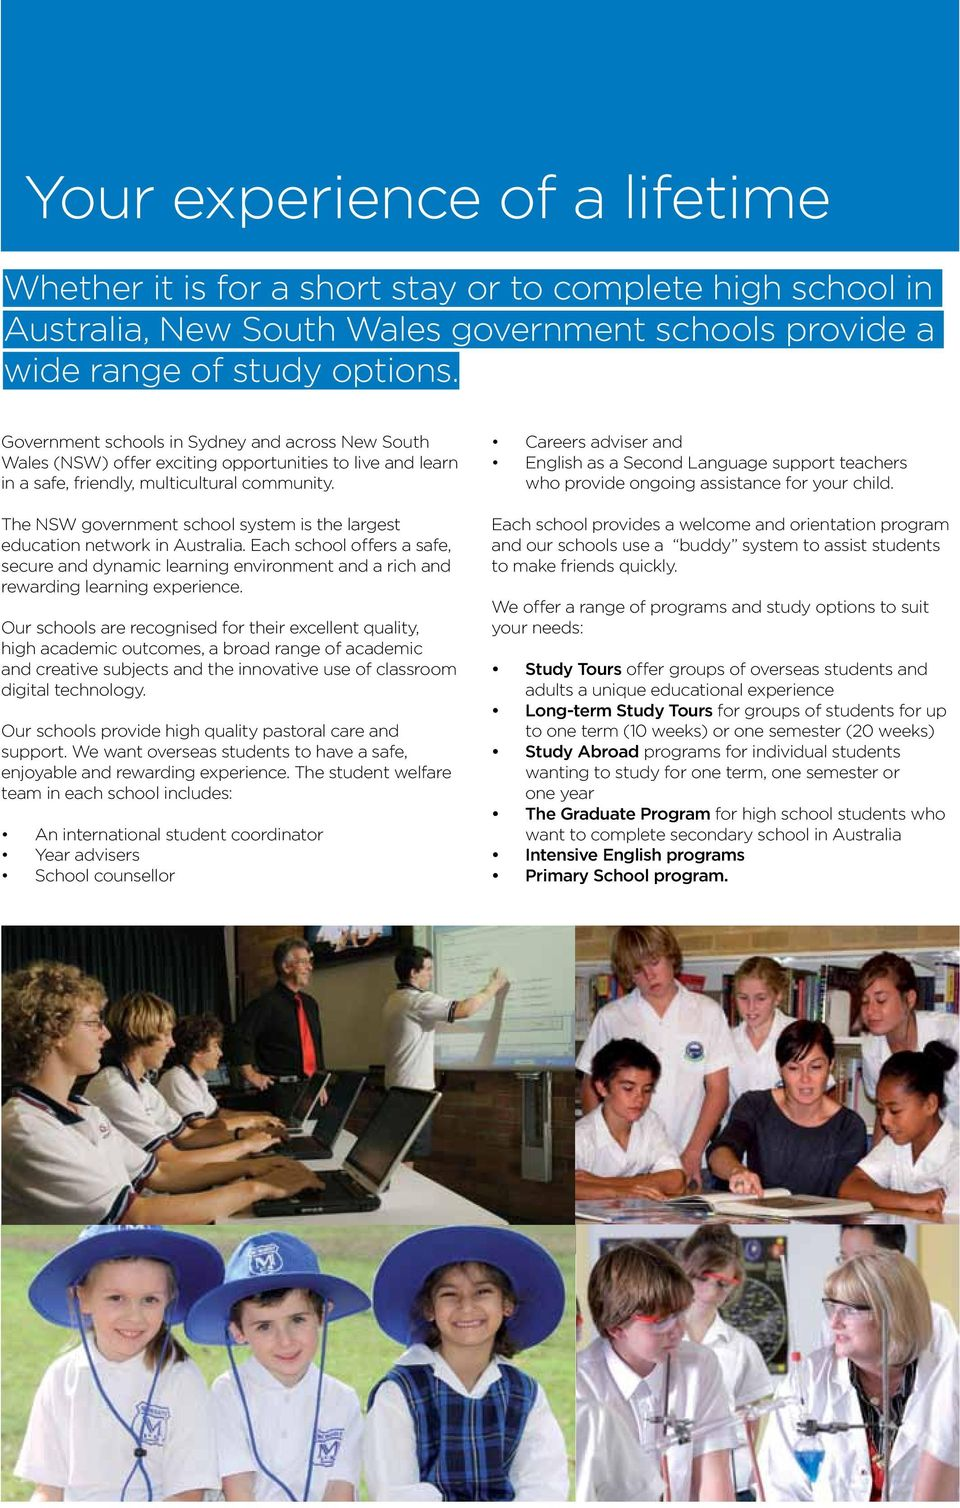 The NSW government school system is the largest education network in Australia. Each school offers a safe, secure and dynamic learning environment and a rich and rewarding learning experience.